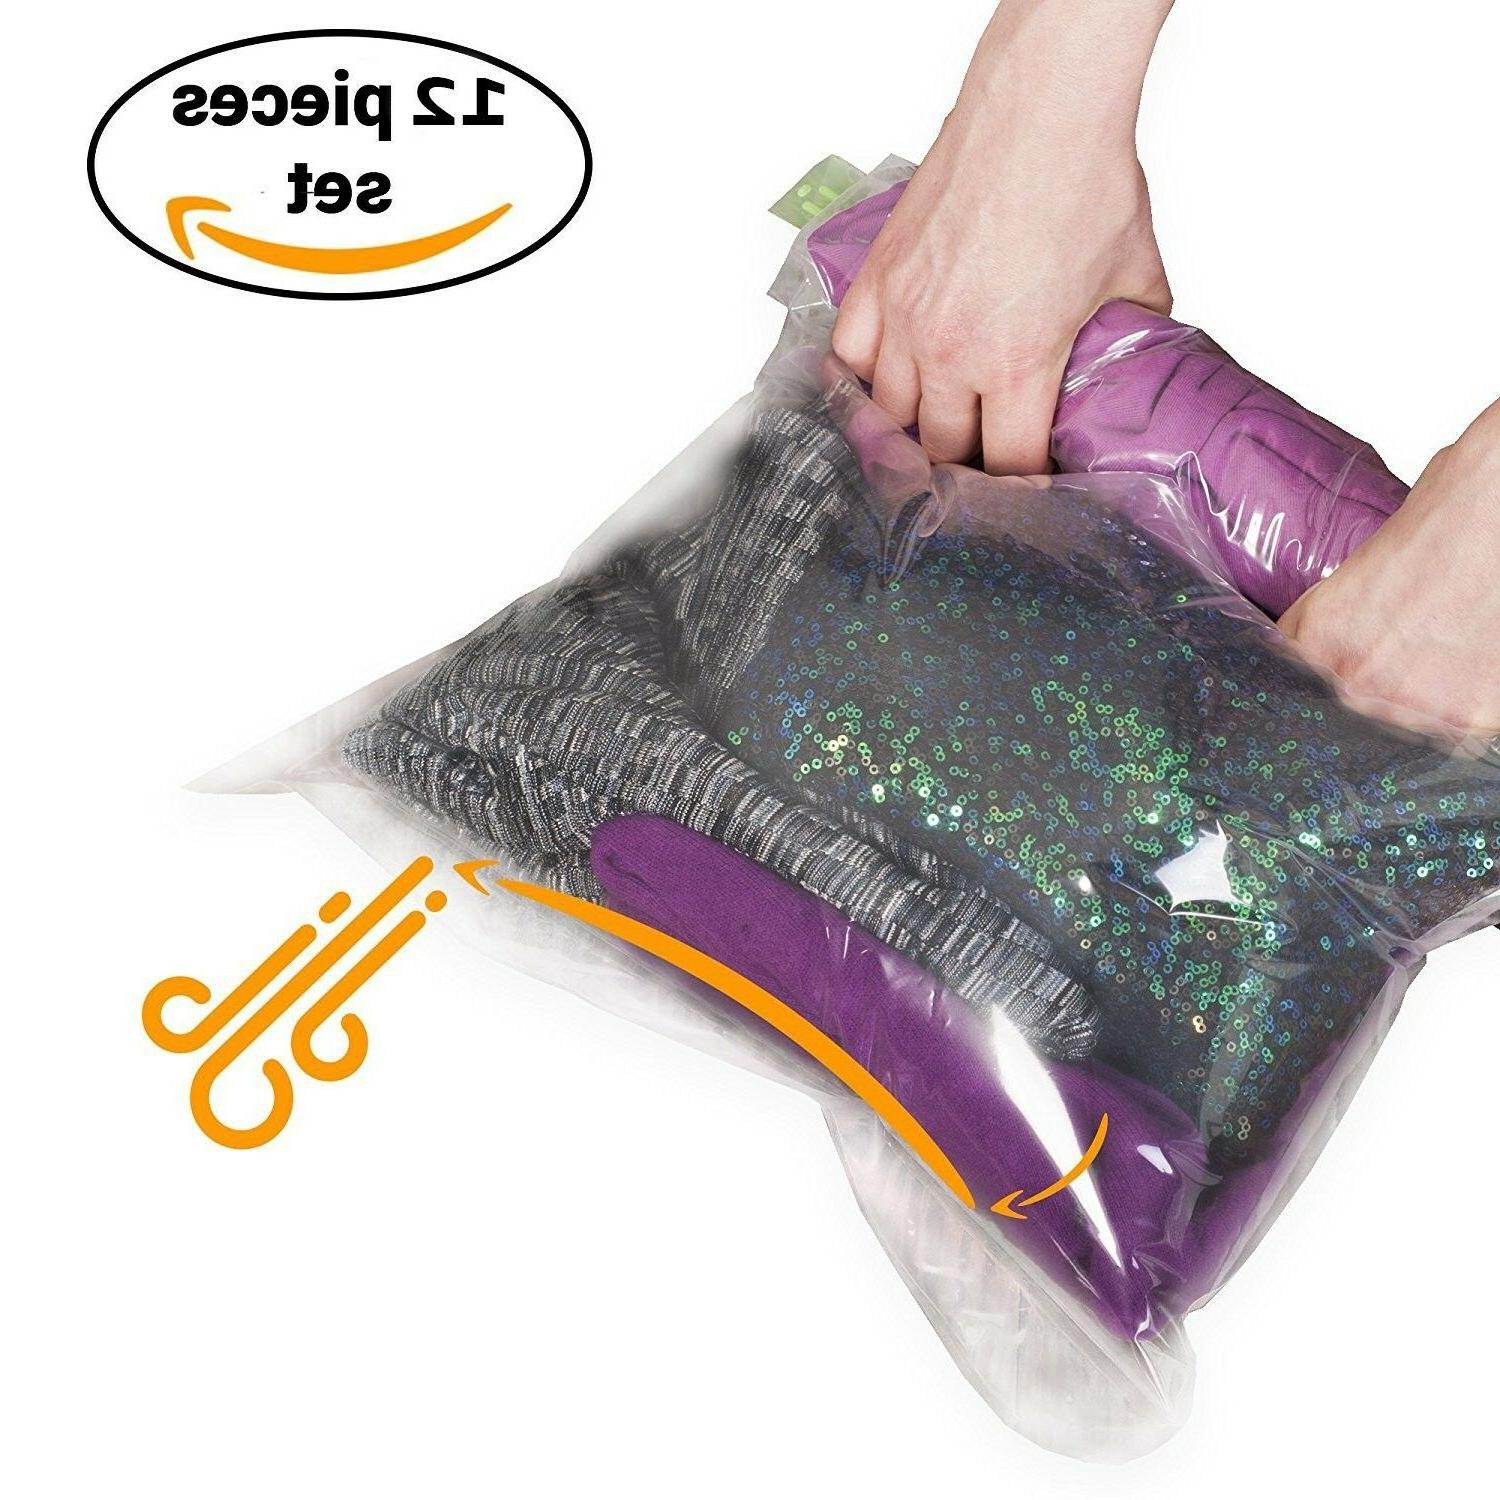 12 Travel Storage Bags for Clothes - Compression Bags for Tr